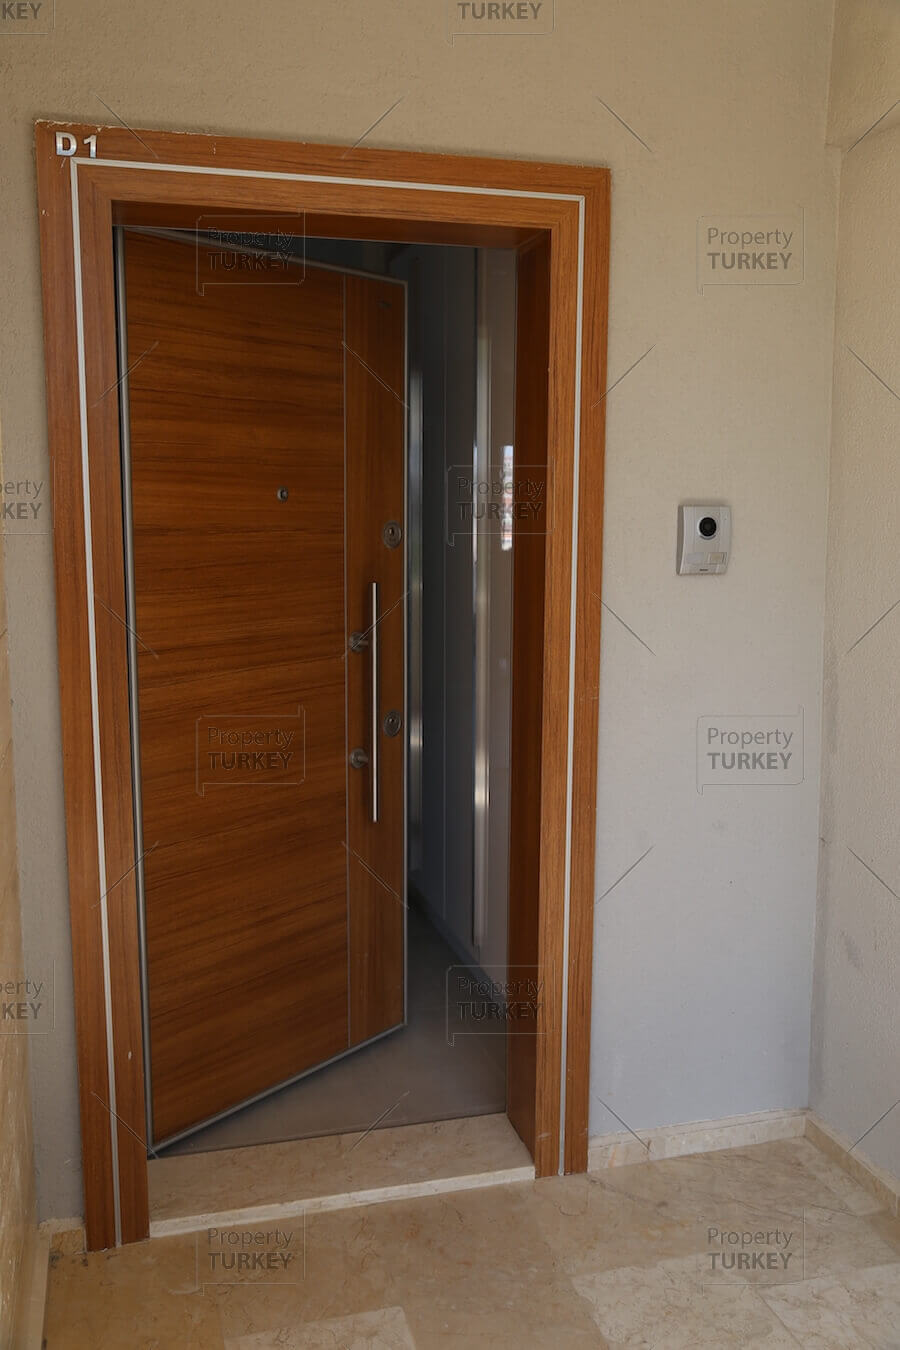 Access to the apartment